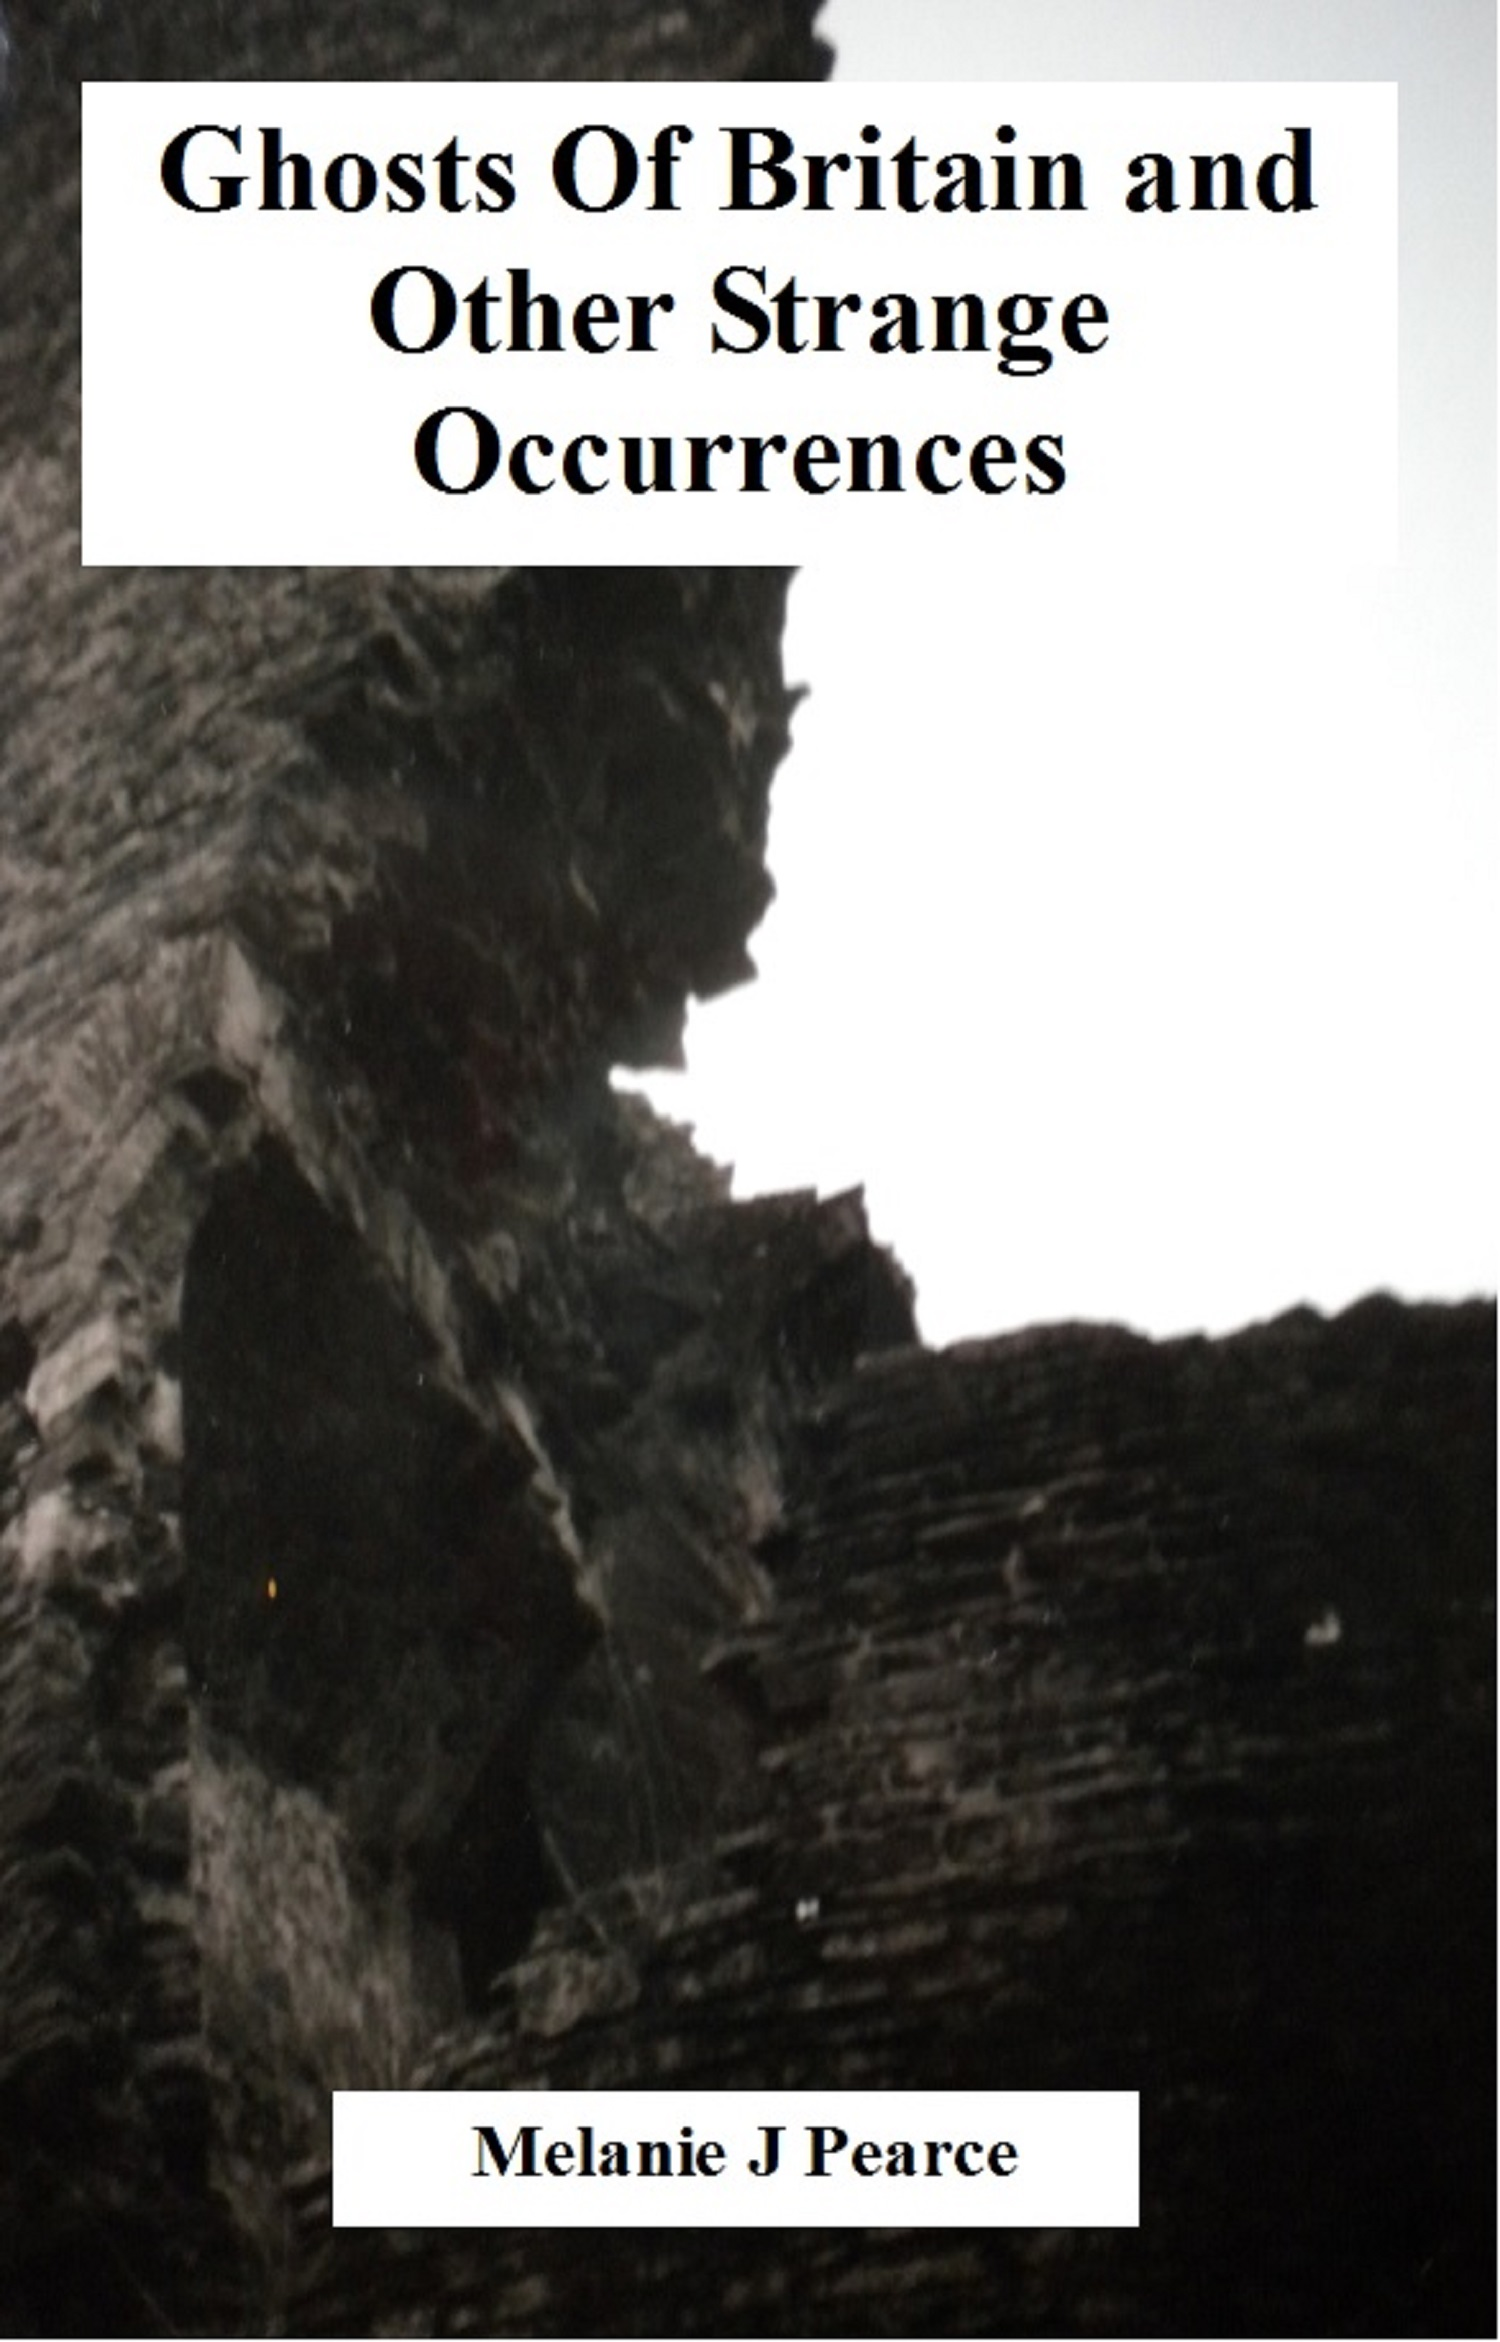 Melanie Pearce - Ghosts Of Britain and Other Strange Occurrences